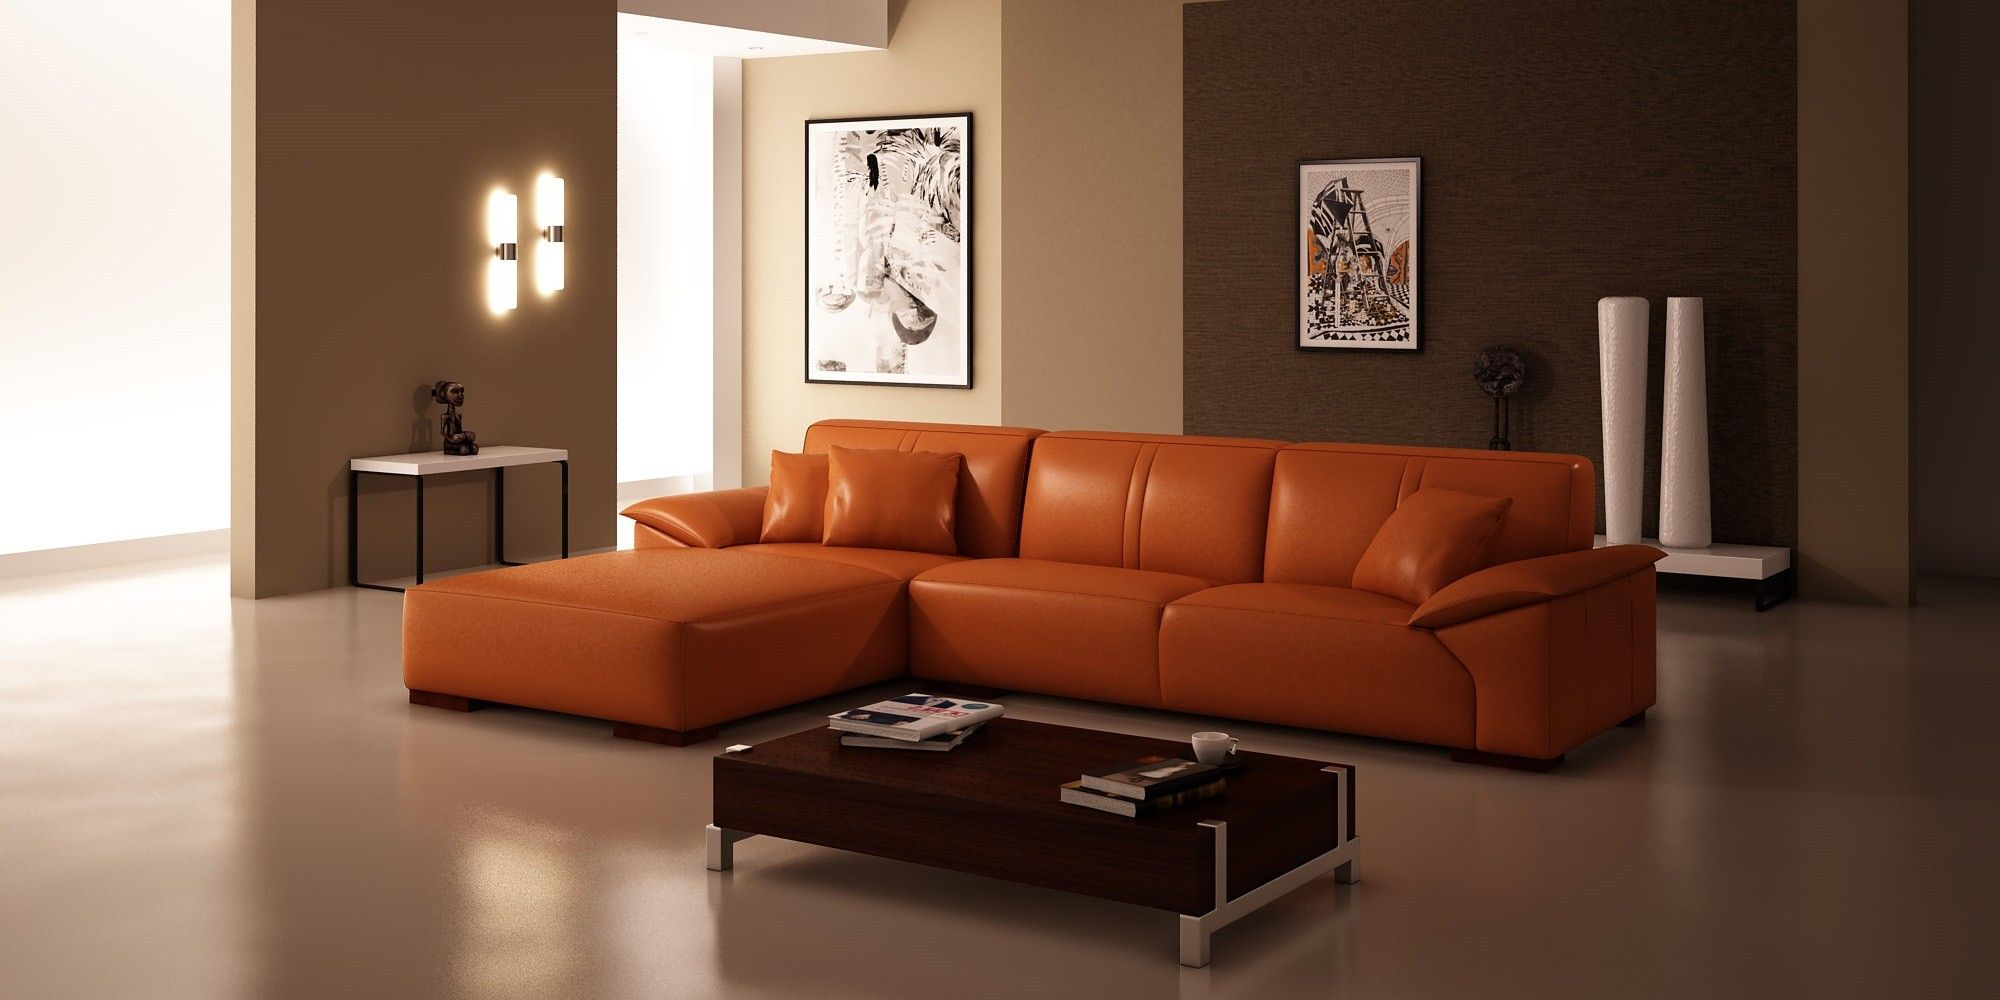 Tremendous Interior Orange Leather Sofa Chaise Lounge With Cushions Squirreltailoven Fun Painted Chair Ideas Images Squirreltailovenorg